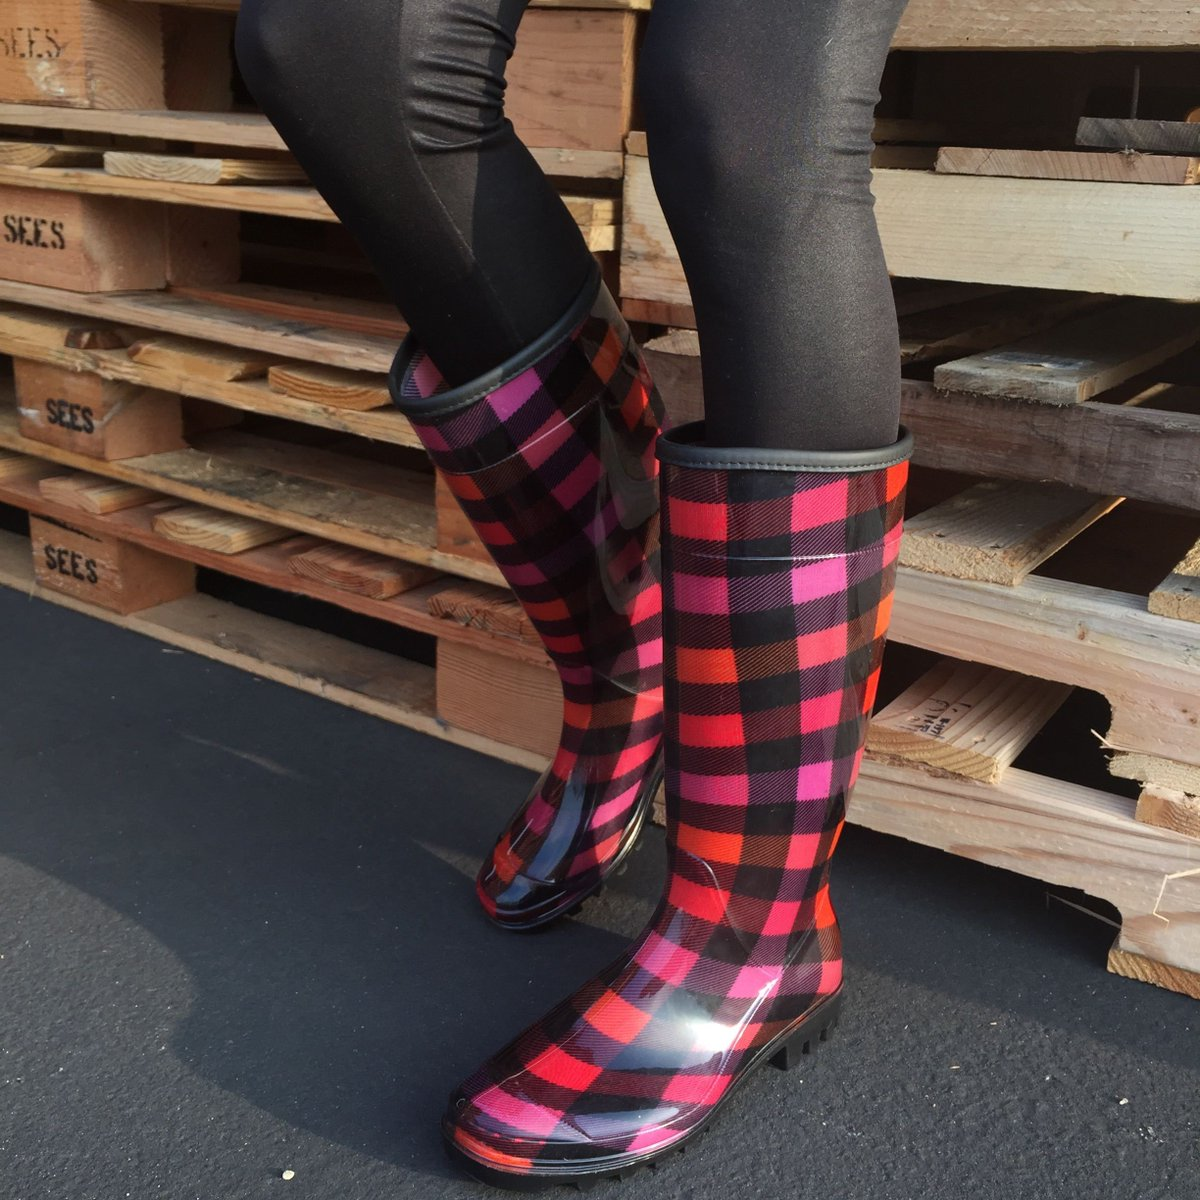 #LT So follow us and RT this for your chance to win 1 of 3 pairs of rain boots! #giveaway http://t.co/JPXSxpJ6Mt